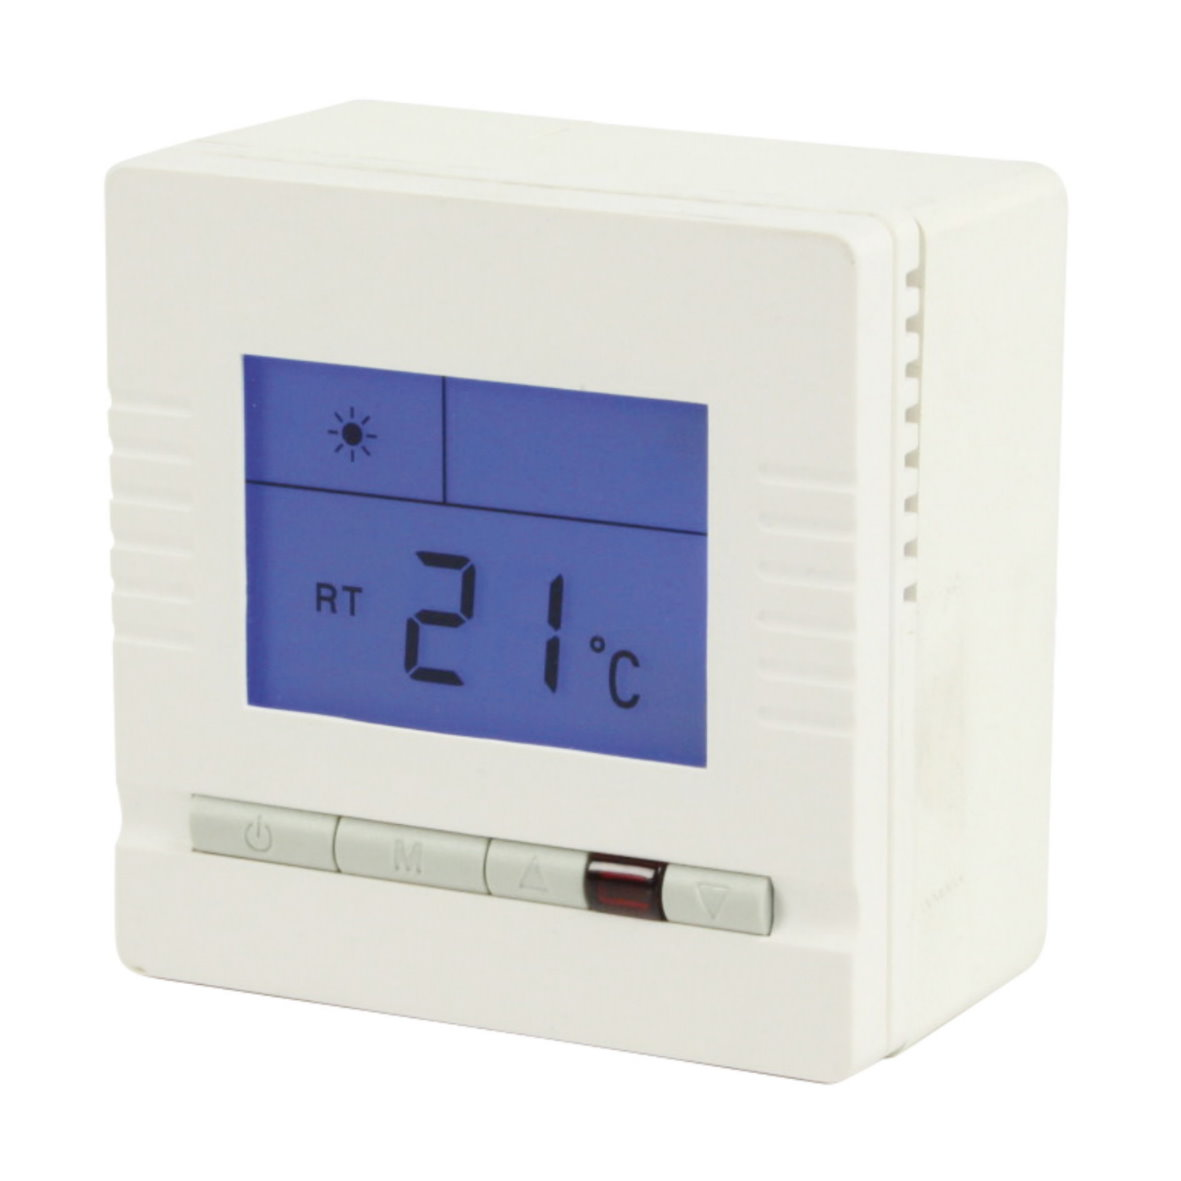 analoger digitaler raumthermostat heizung thermostat fu bodenheizung aufputz ebay. Black Bedroom Furniture Sets. Home Design Ideas